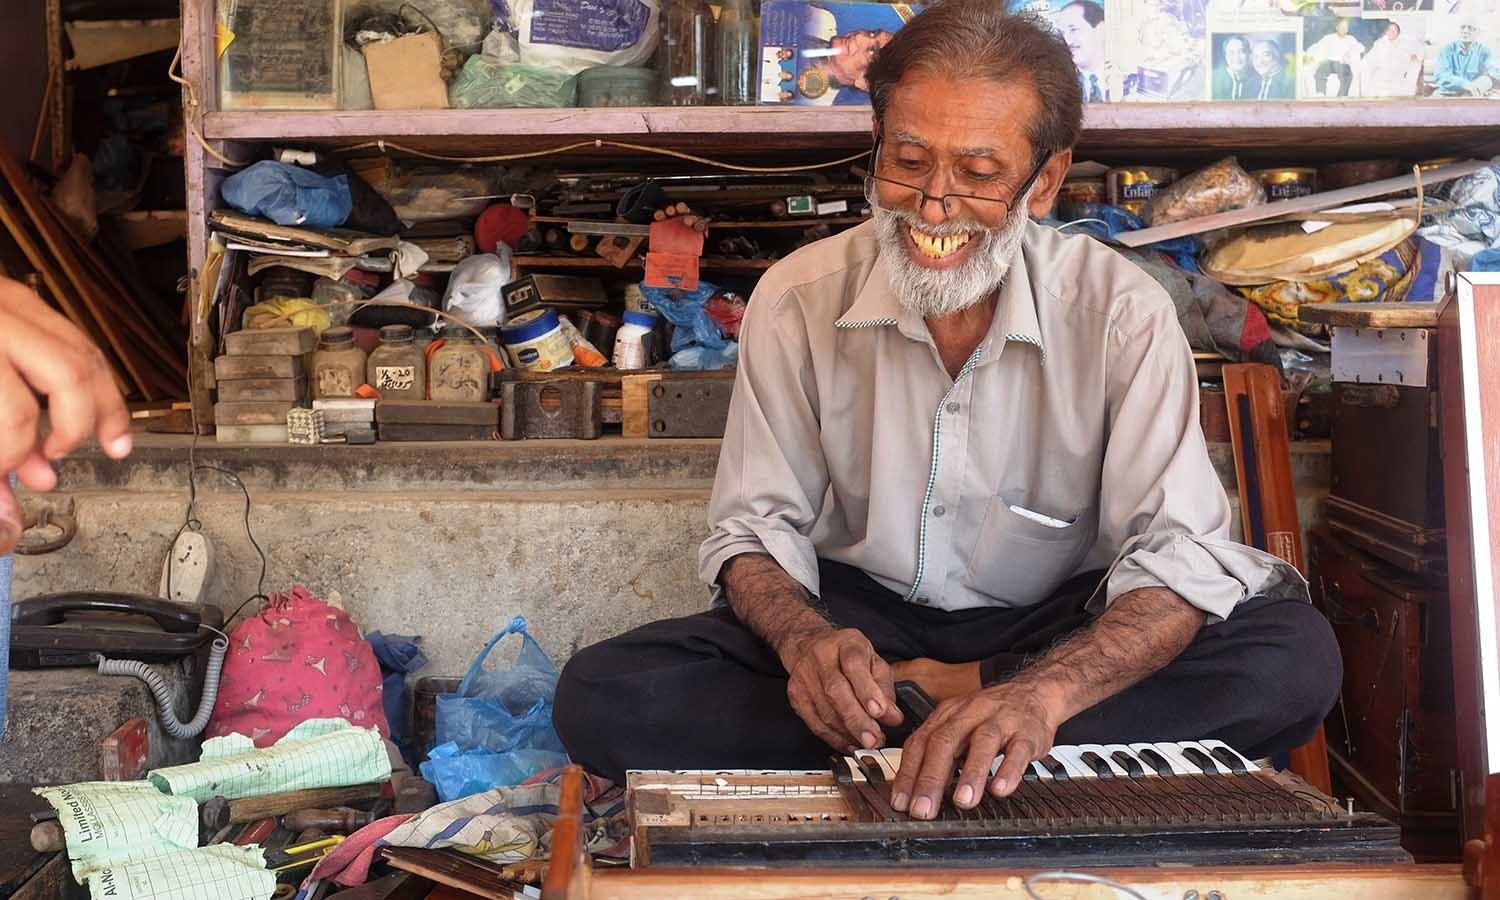 We finally locate Waheed's Music shop and find Waheed repairing a harmonium there.